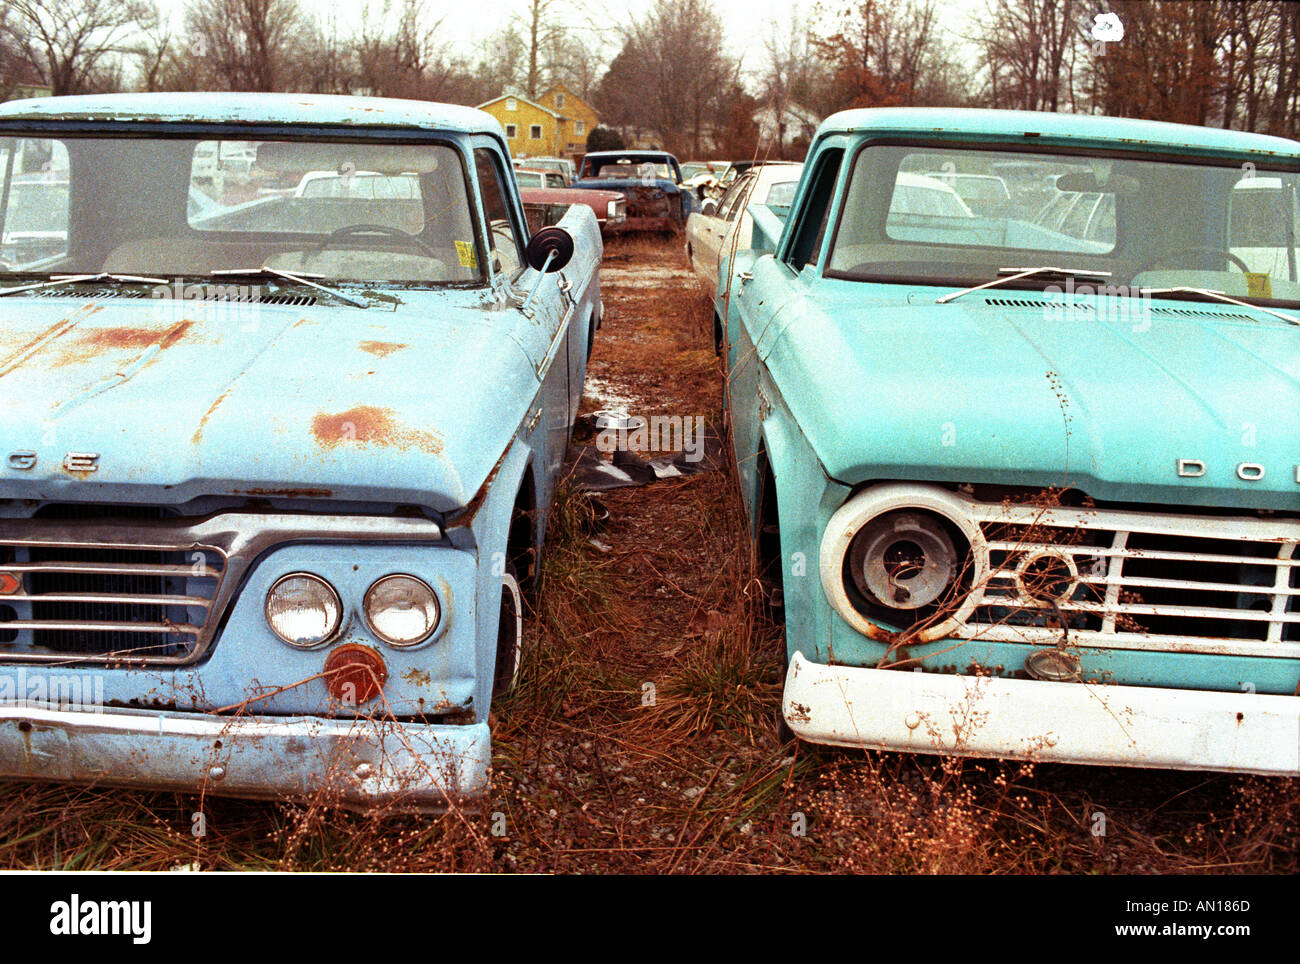 Junkyard with wrecked and junked cars Stock Photo, Royalty Free ...